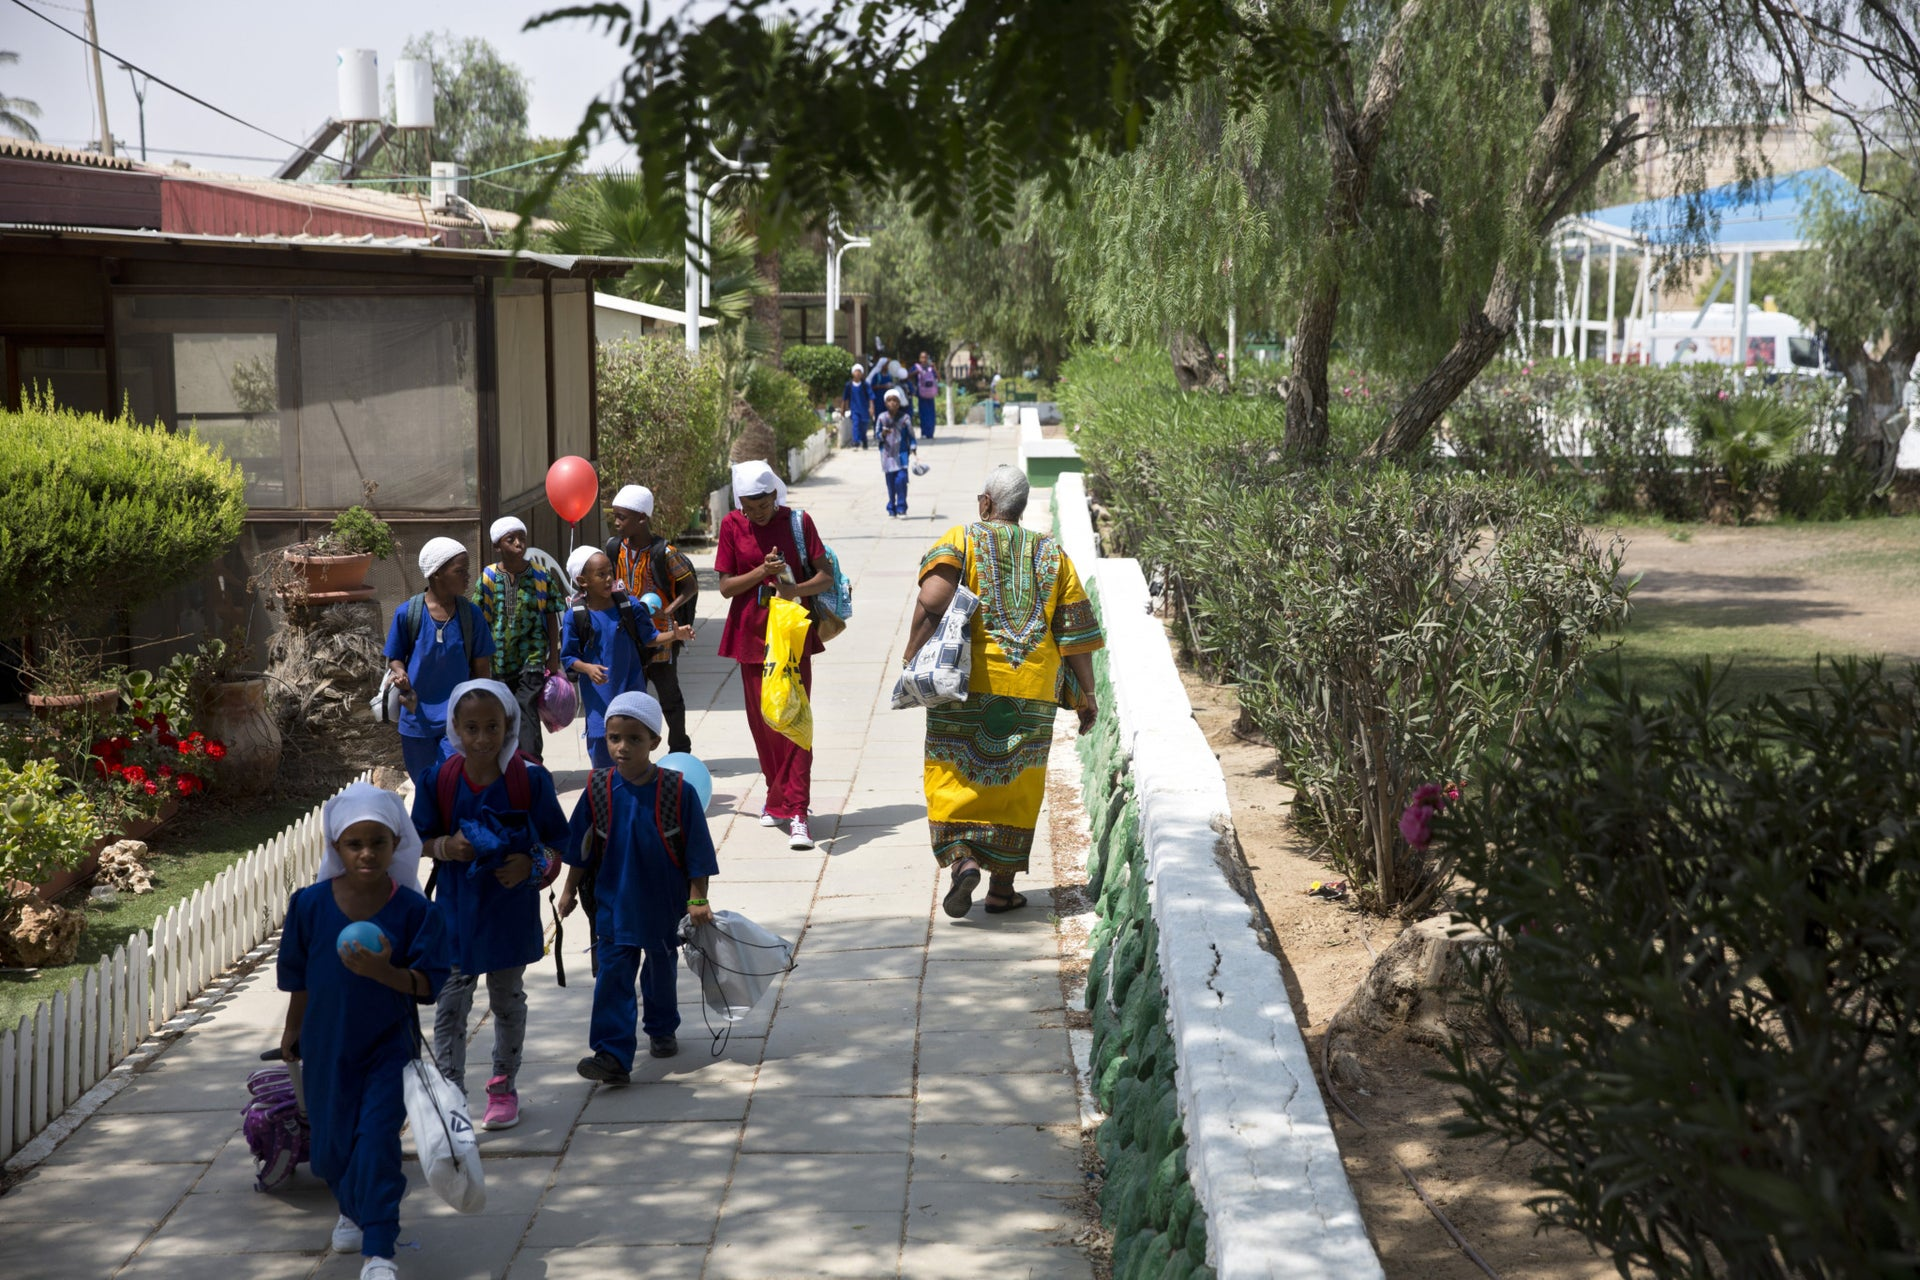 Children from the Hebrew-Israelite community on their way back from school, in Dimona, September 2018